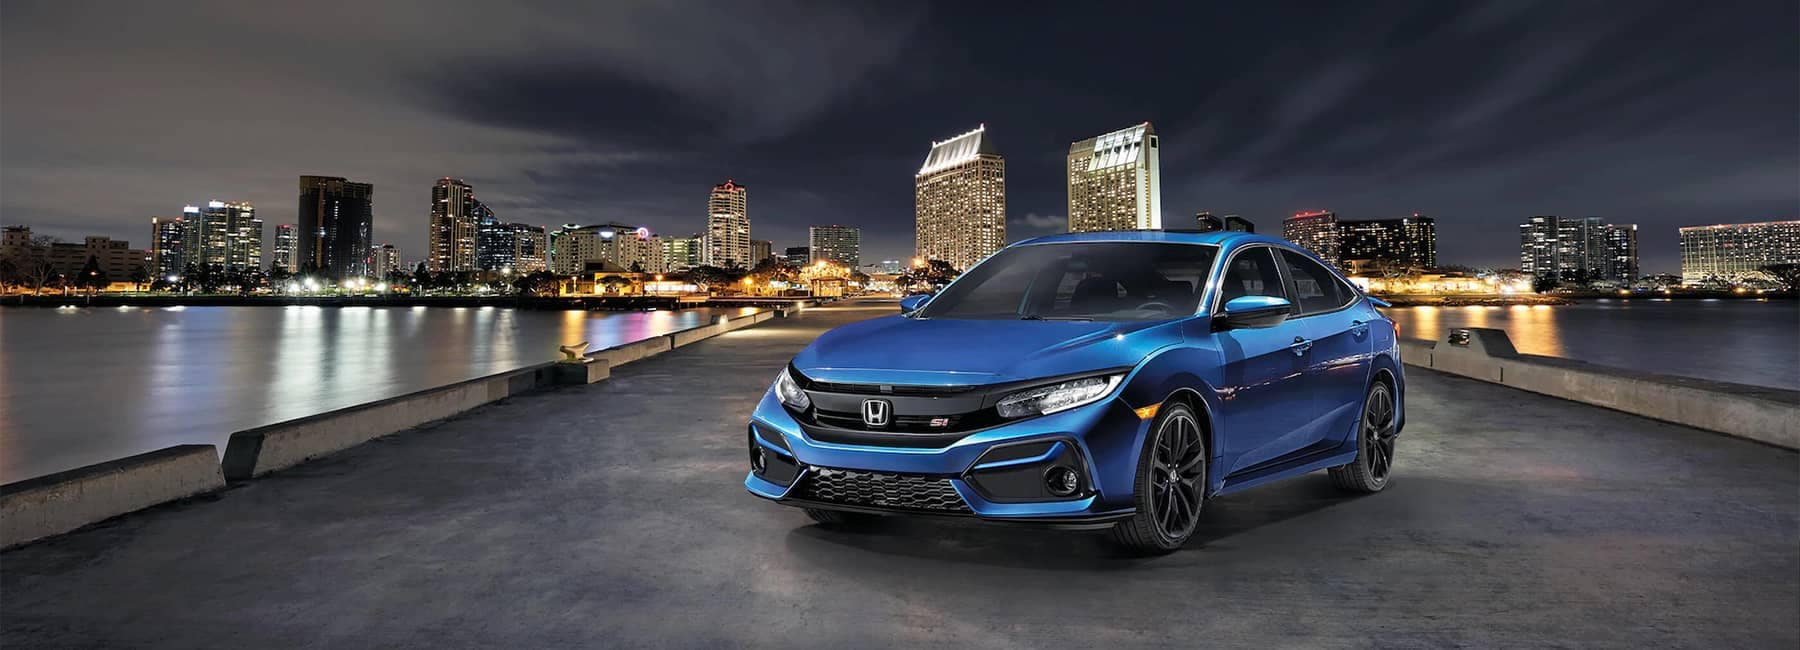 2020 Blue Honda Civic SI Parked Angled in front of City Skyline Mobile